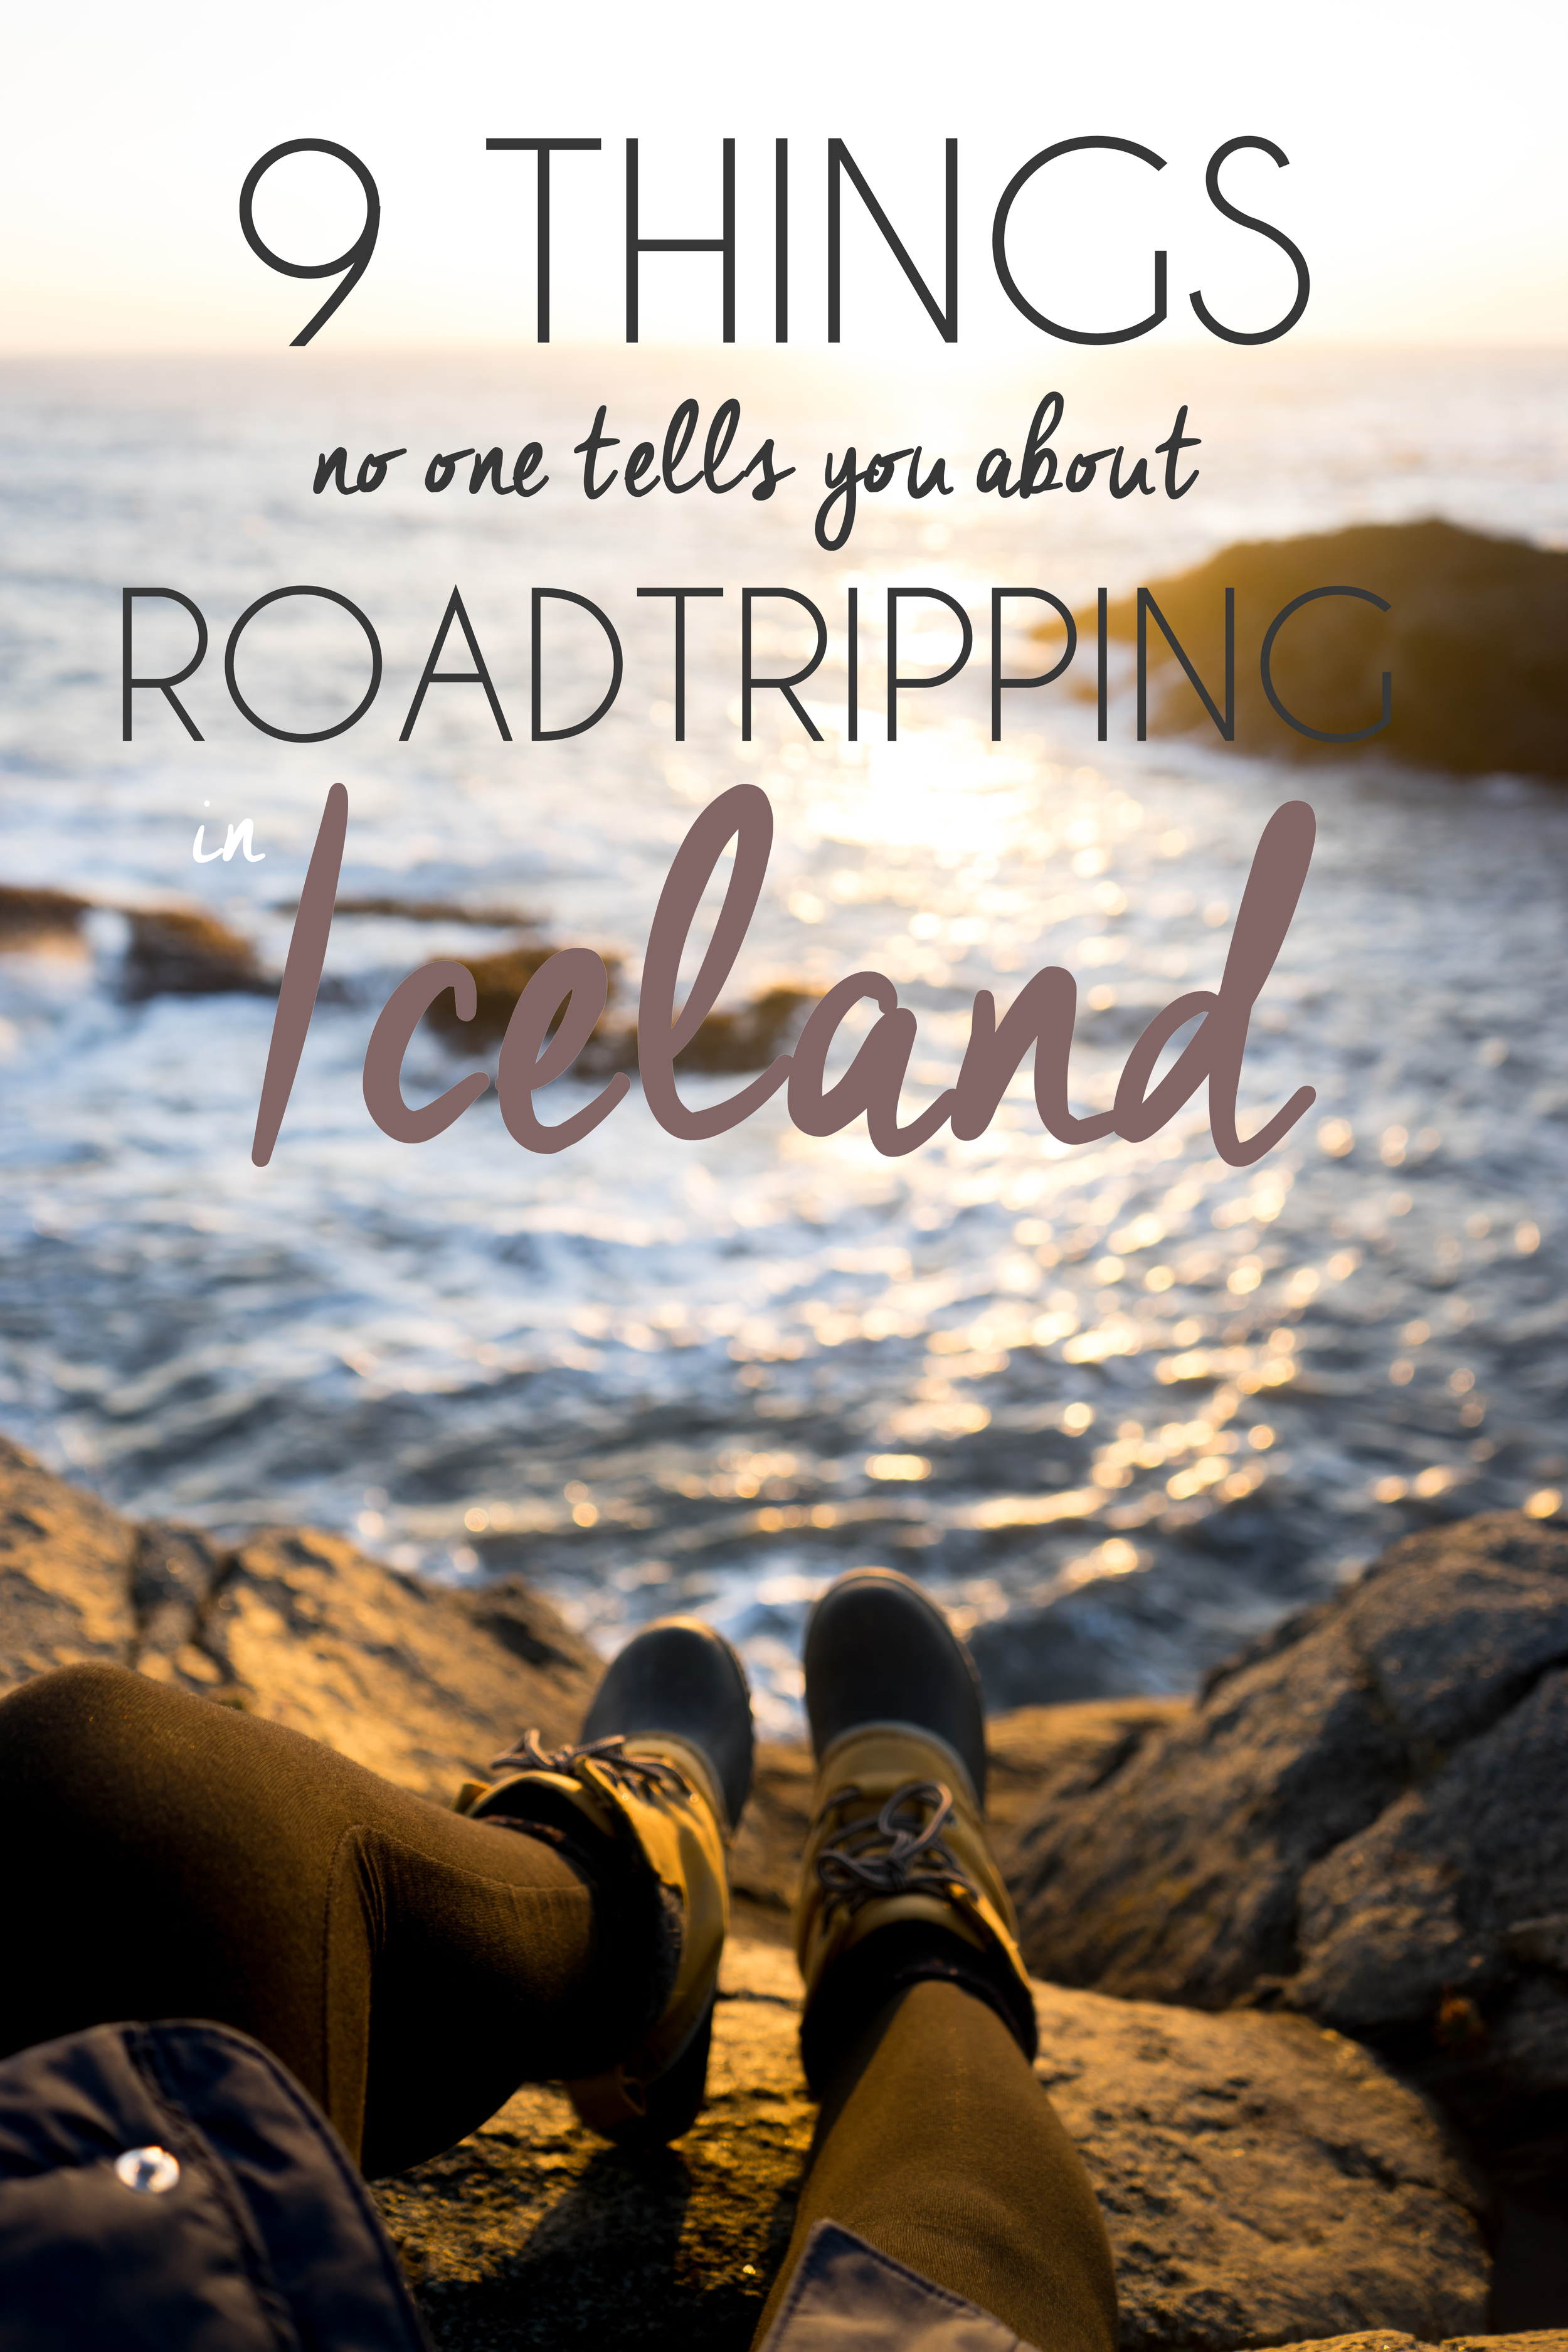 Maggie-a-la-Mode---9-Things-No-One-Tells-You-About-Roadtripping-Around-Iceland.png